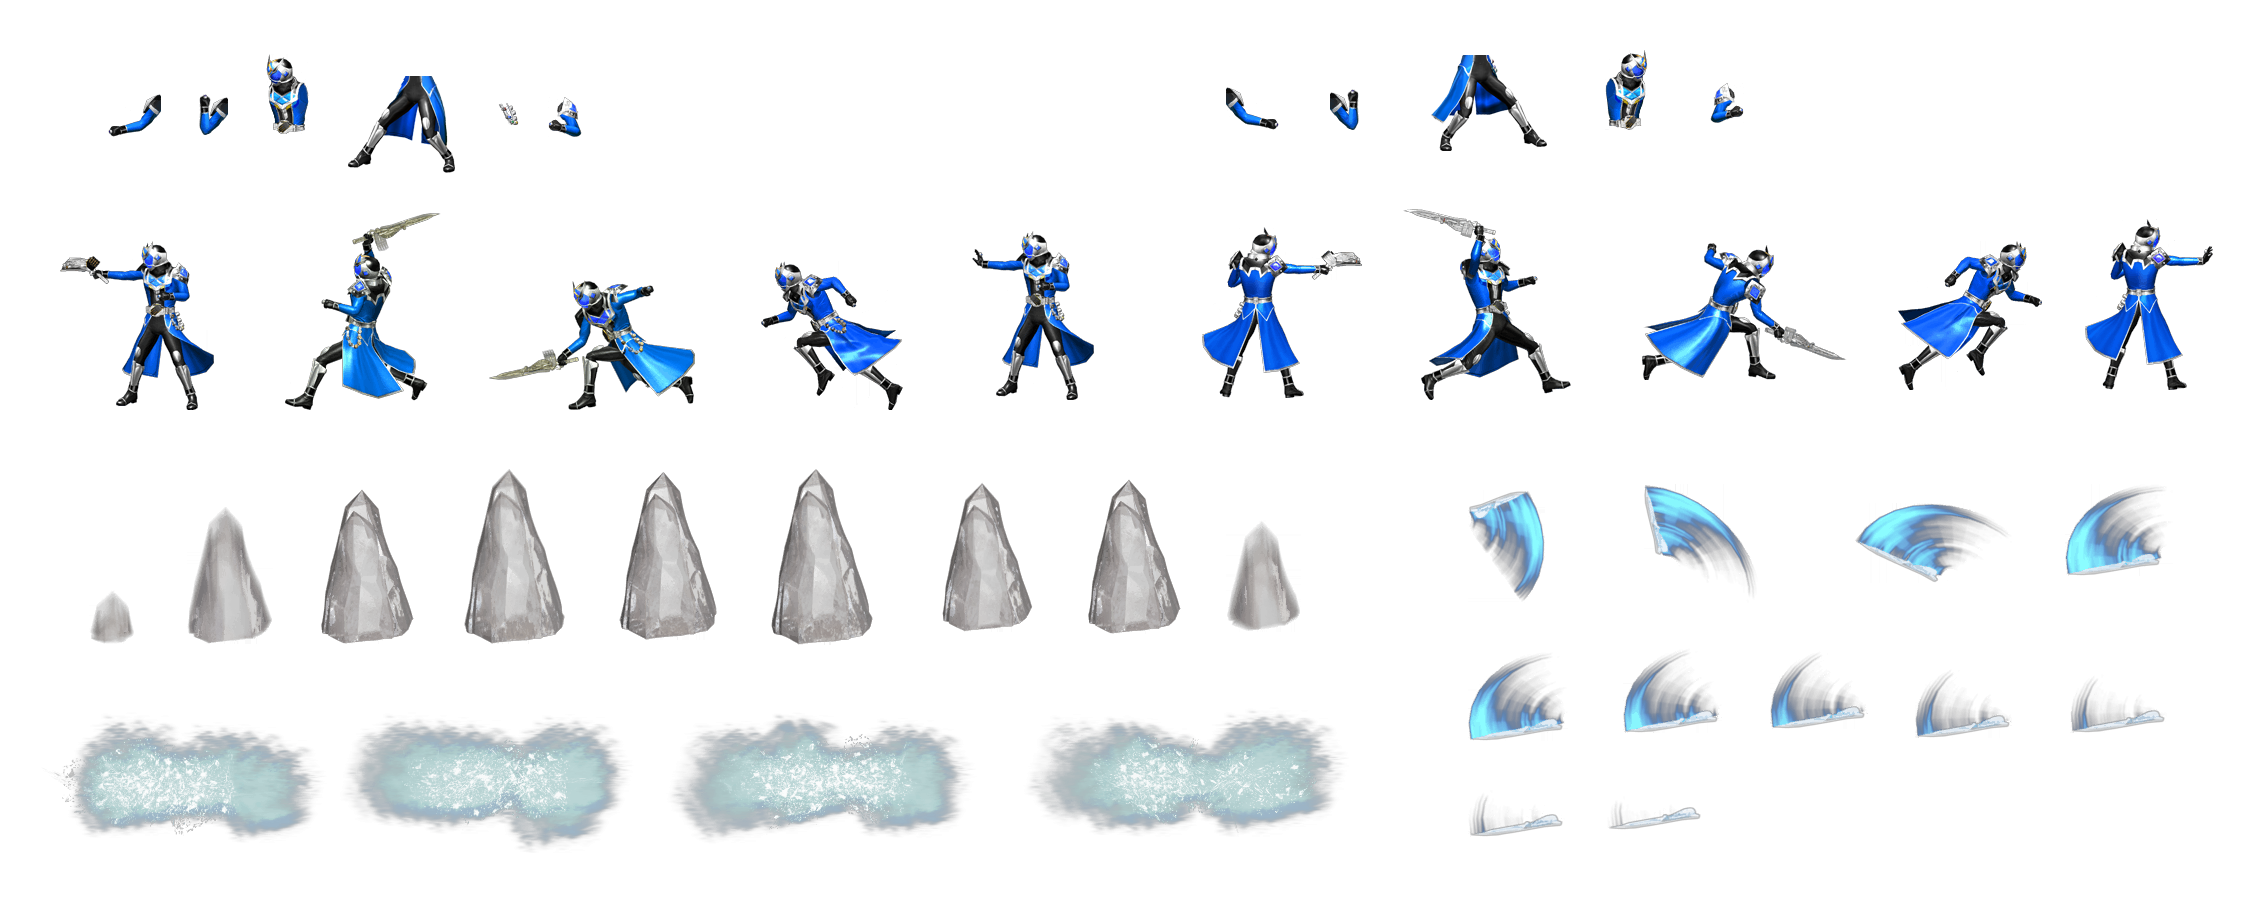 Water sprite png. The spriters resource full